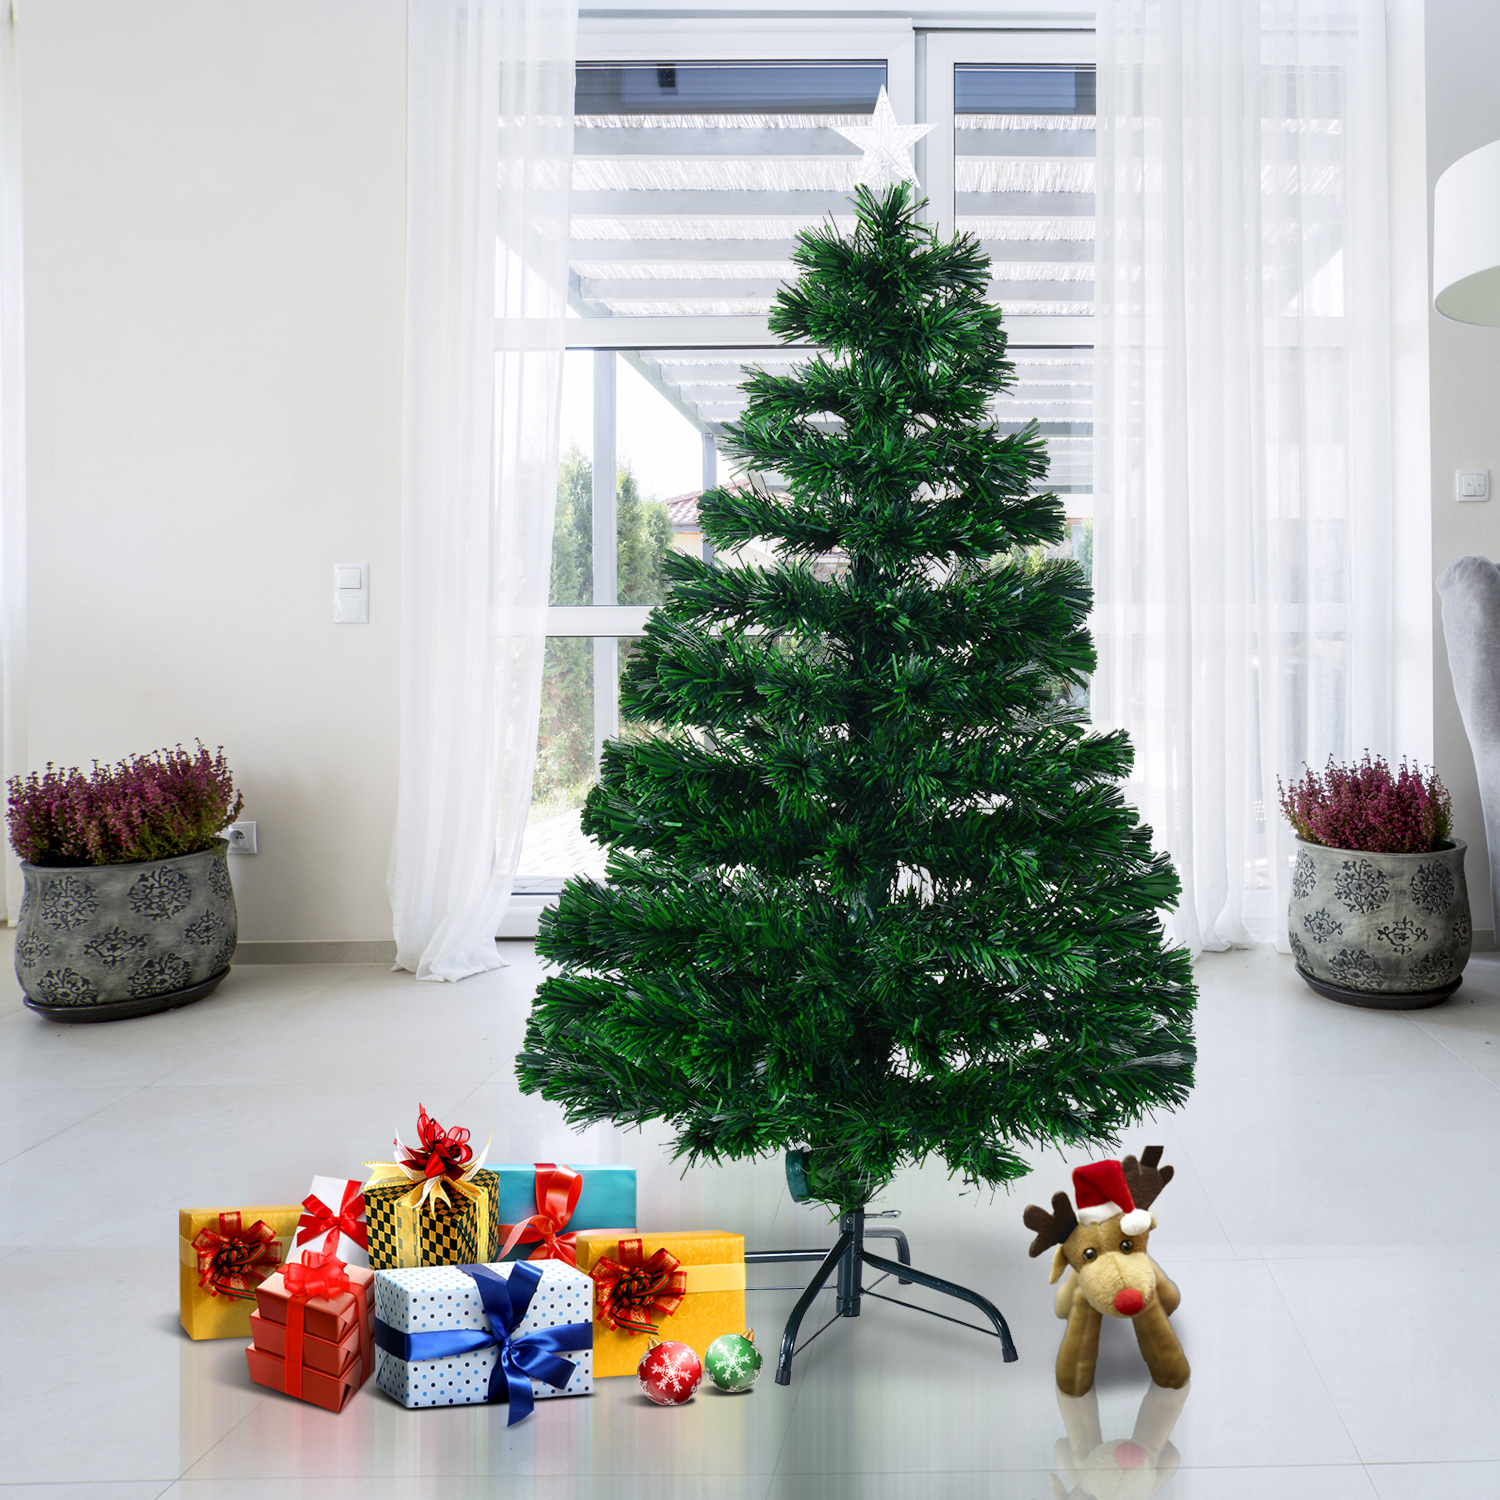 Image of EUR28,99 HomCom Arbol de Navidad + Luces LED Arbol Artificial - Verde Φ60x120cm Black Friday 02-0349 8435428708474